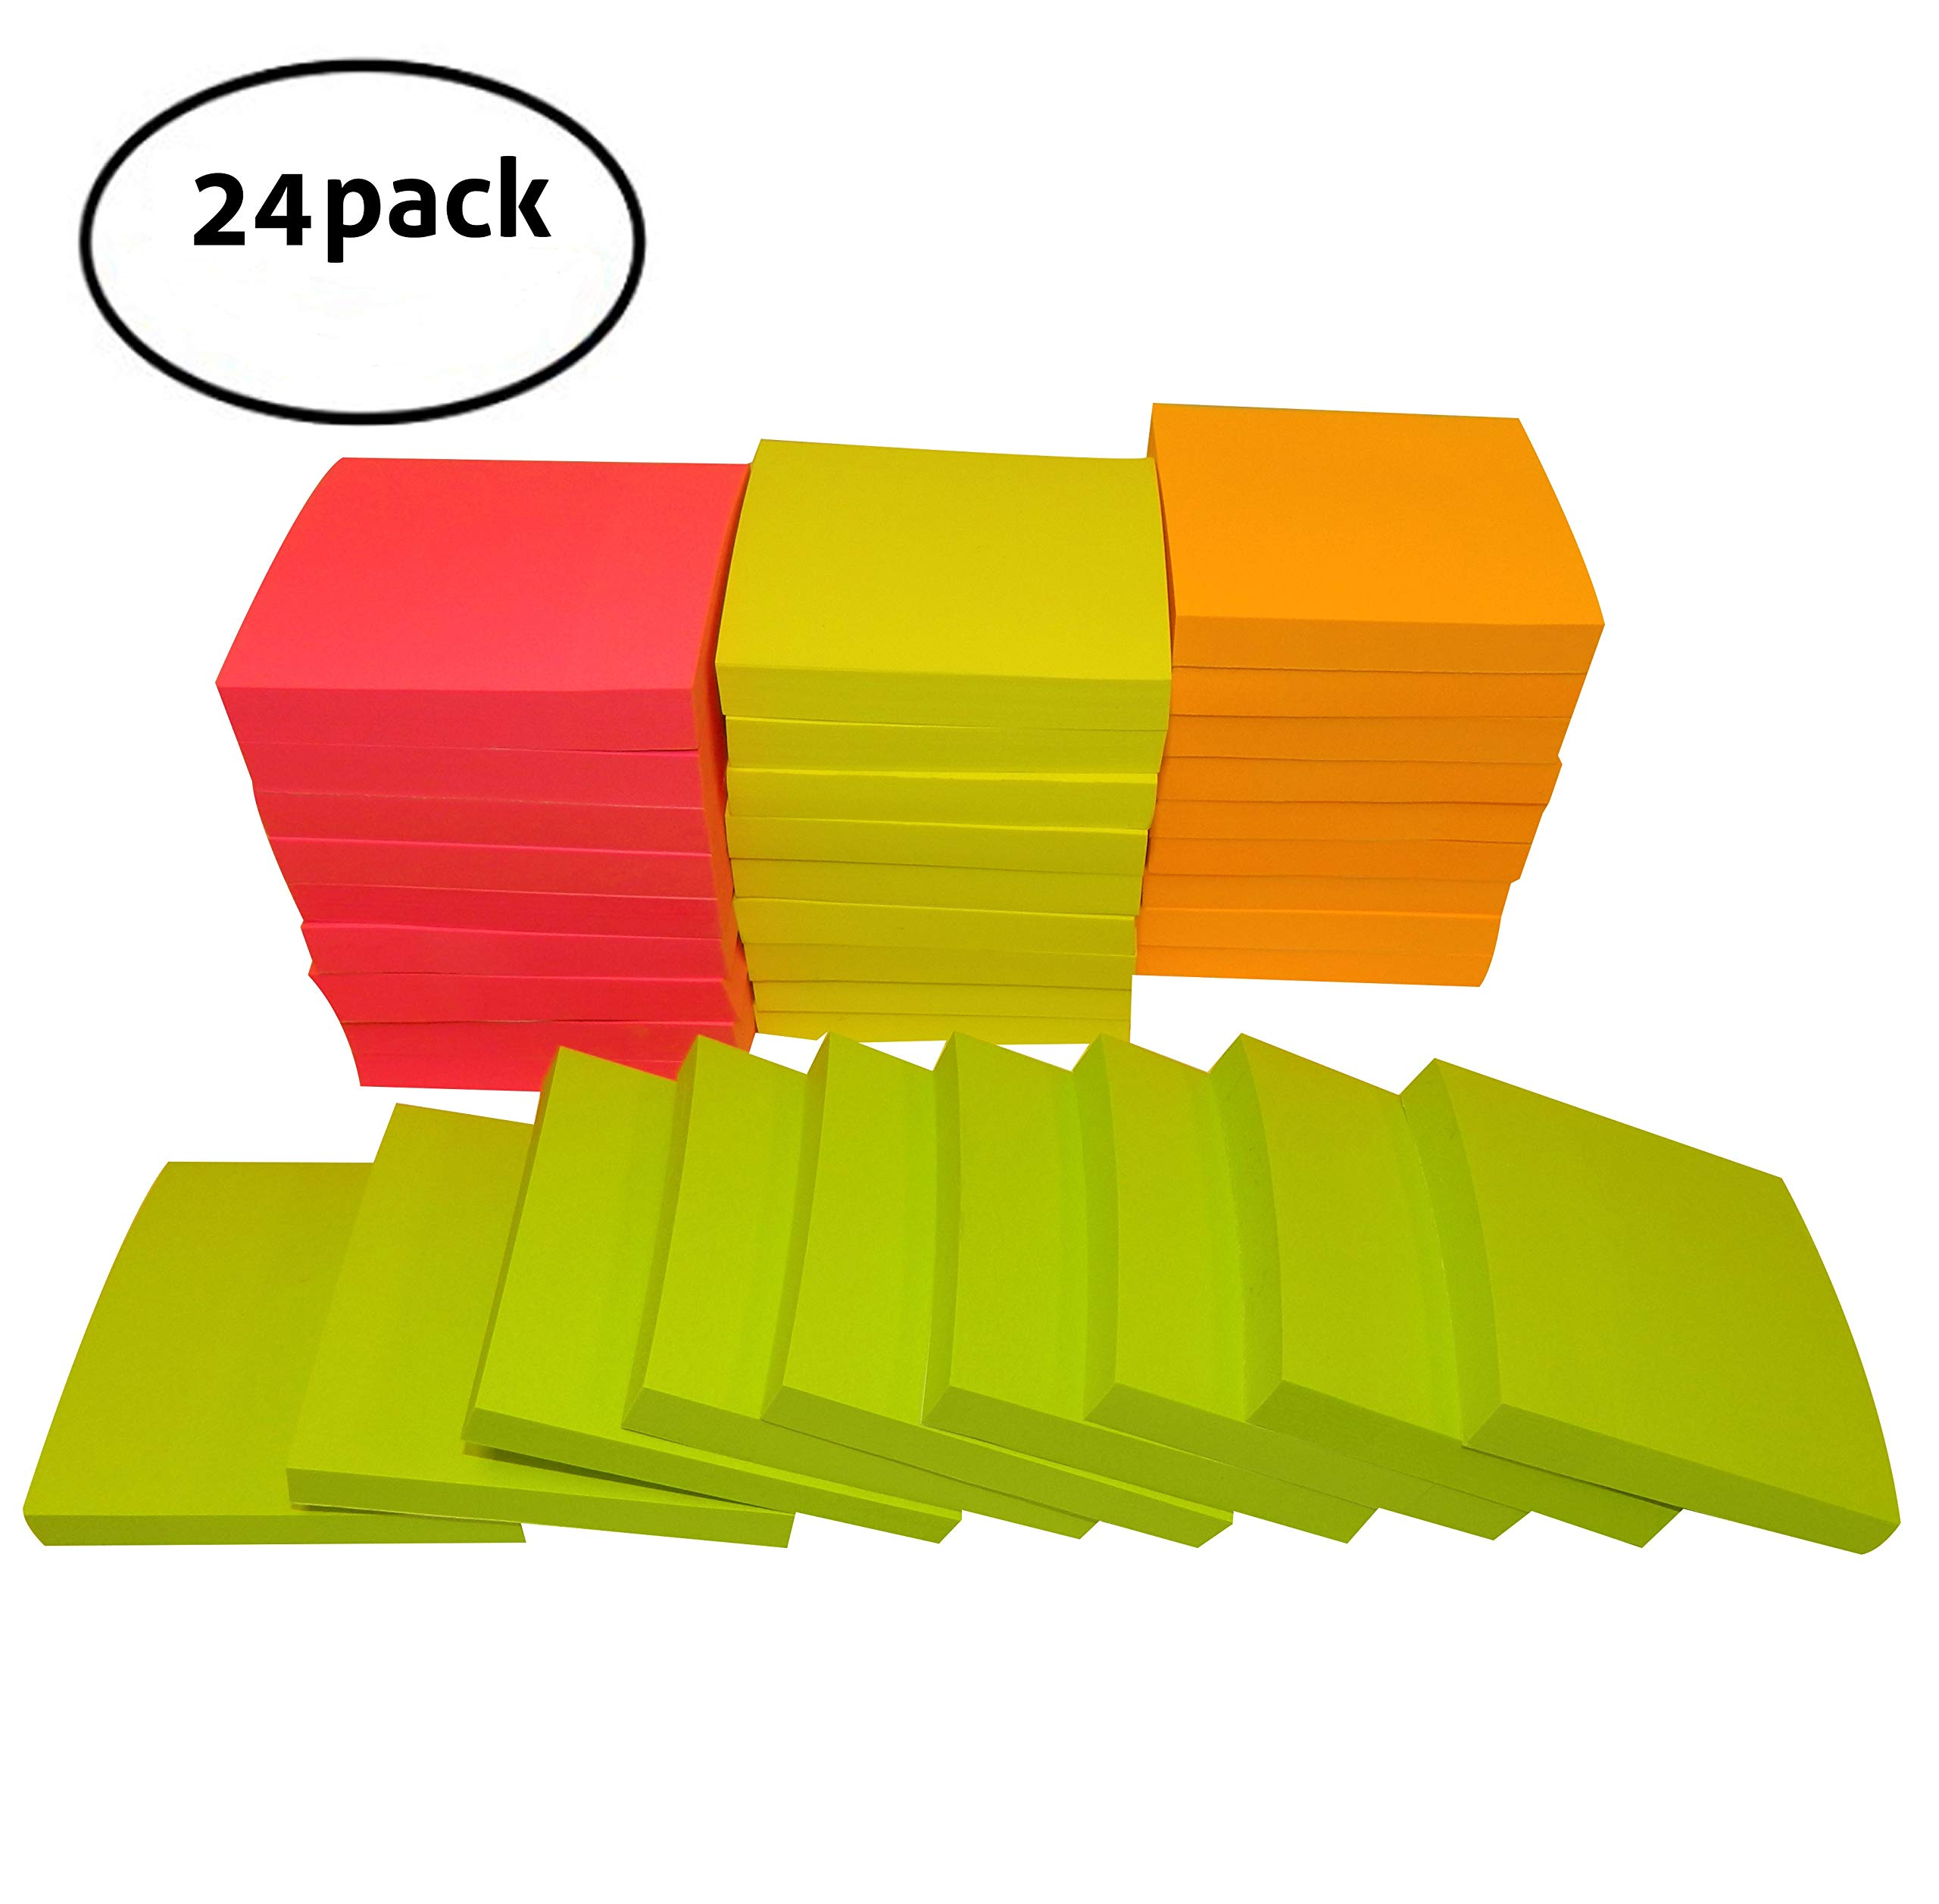 VIKADI Best Value (Pack of 24) Self-Stick Memo Notes Sticky Pads 3x3 inches/100 Sheets per Pad for Office, School, Home/4 Bright Neon Colors: Orange, Pink, Yellow, Green